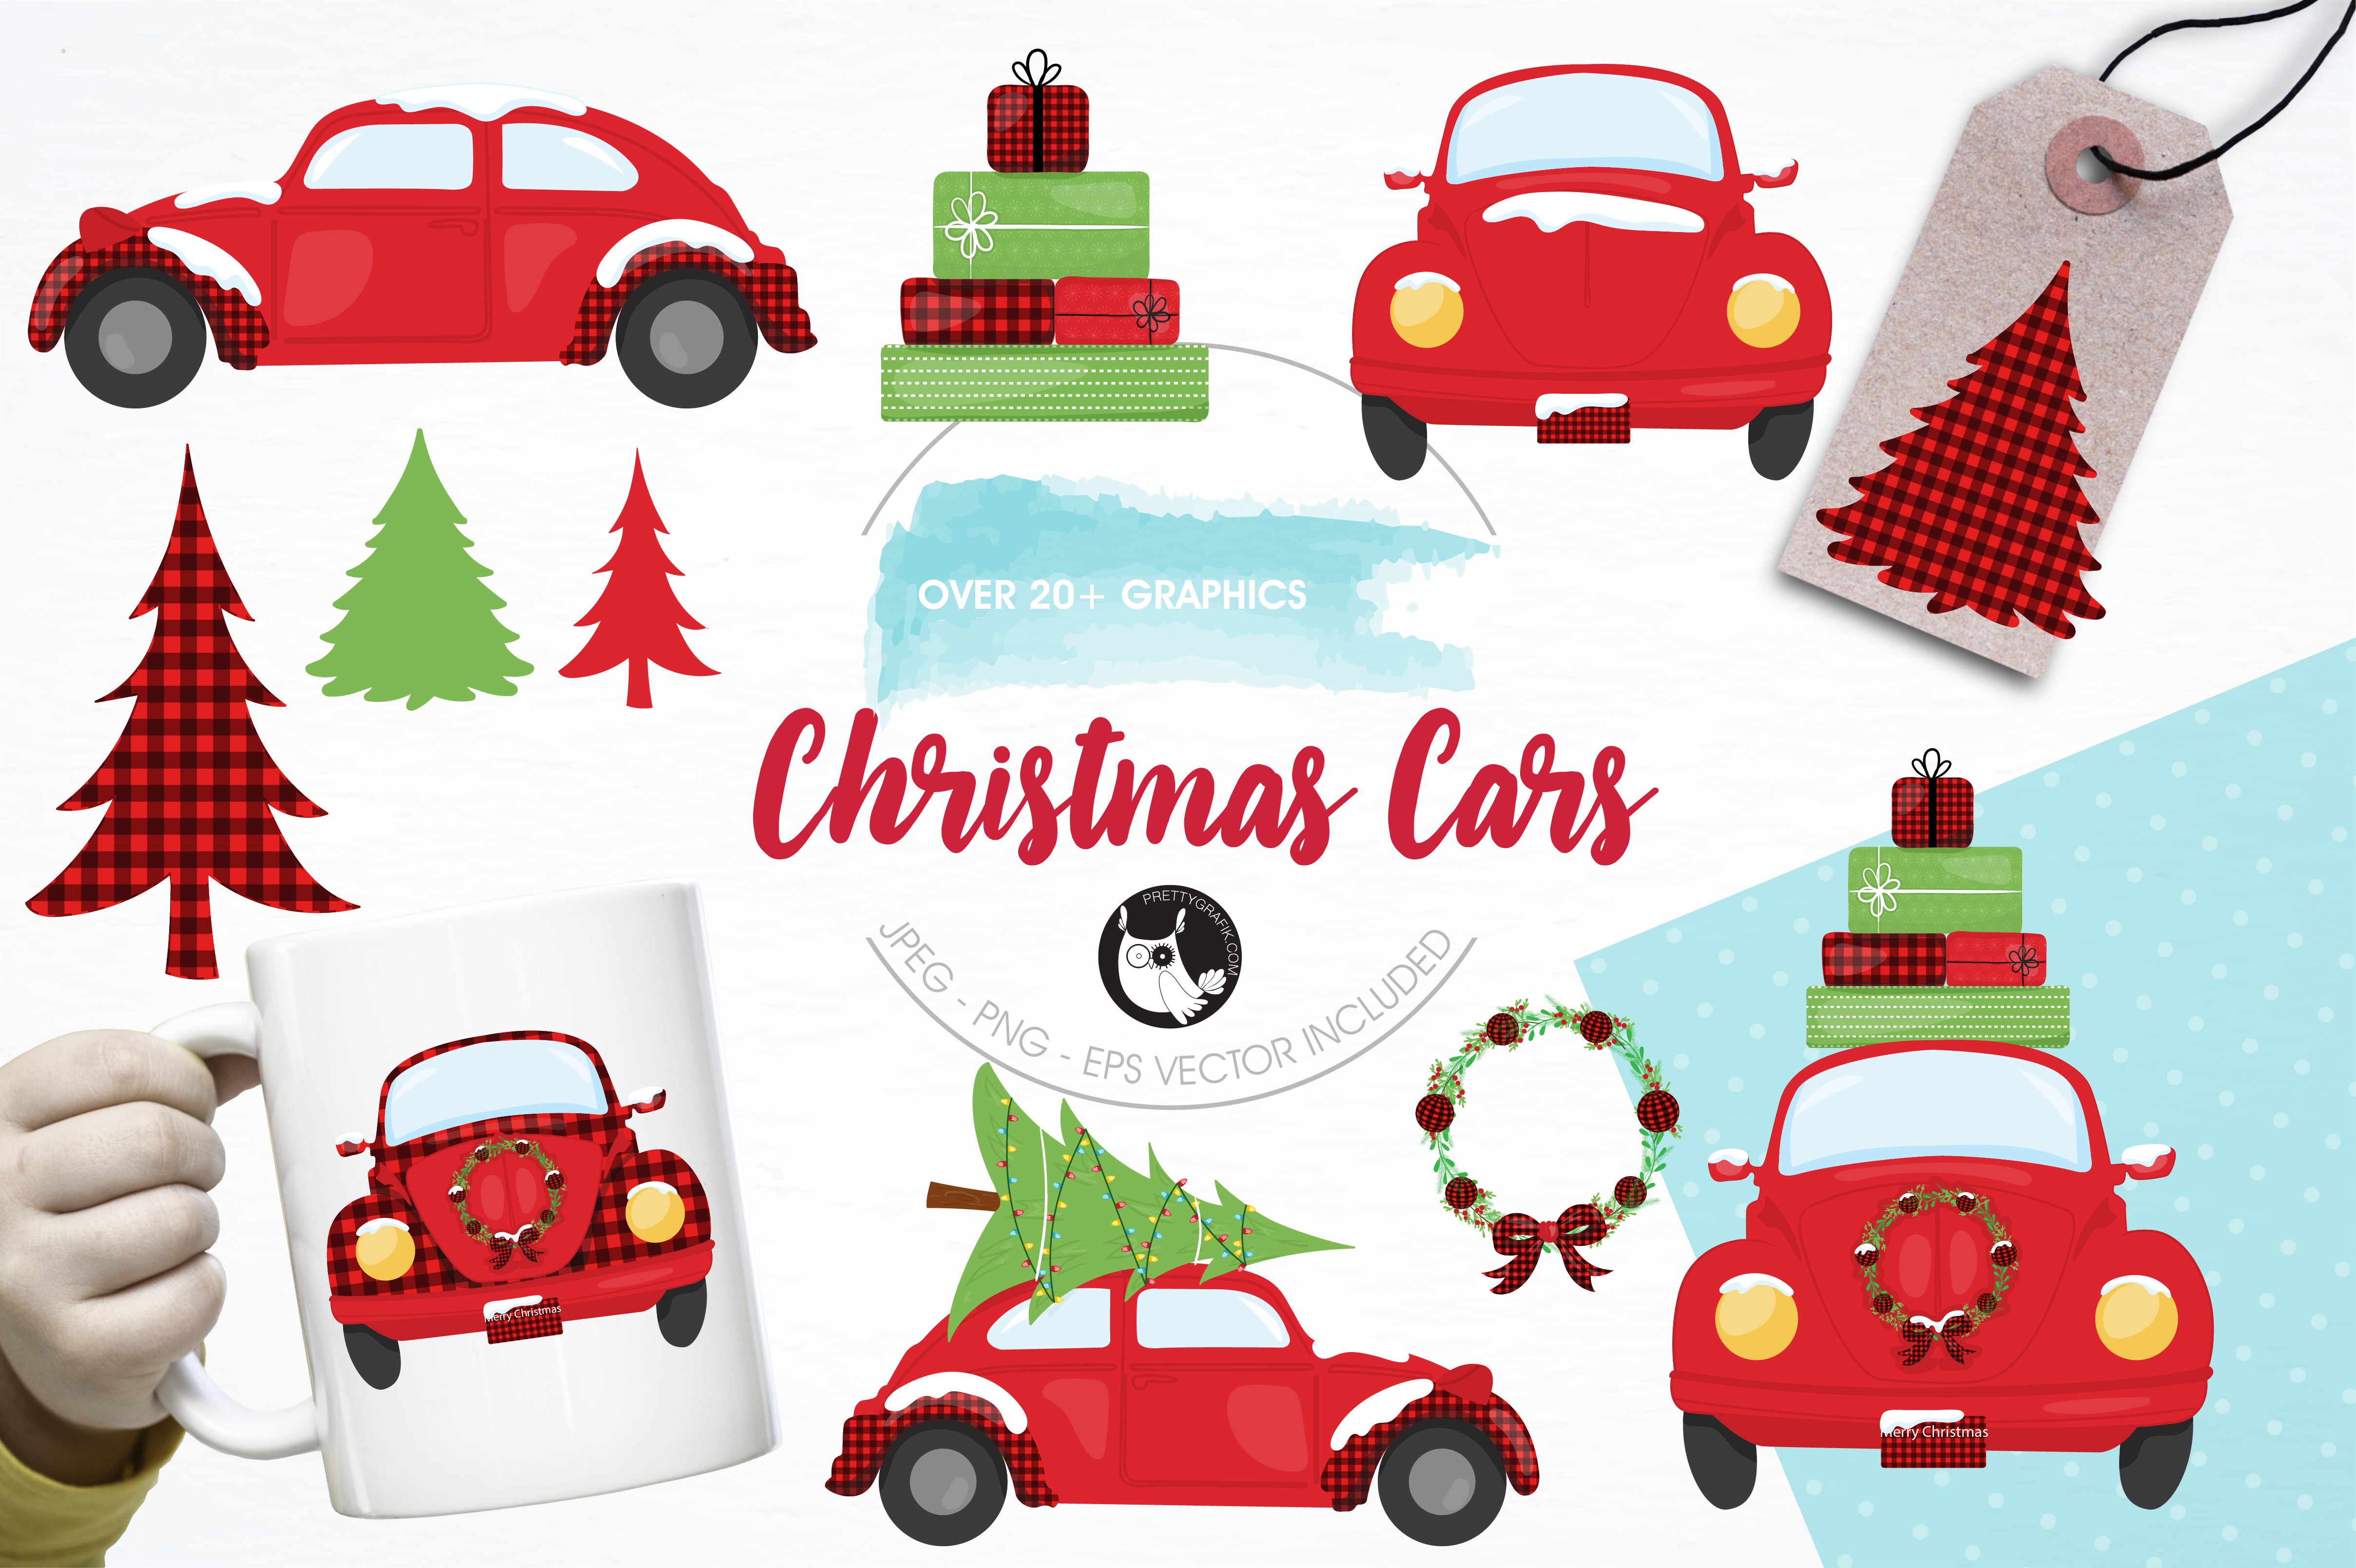 Download Free Christmas Cars Clipart Set Graphic By Prettygrafik Creative for Cricut Explore, Silhouette and other cutting machines.